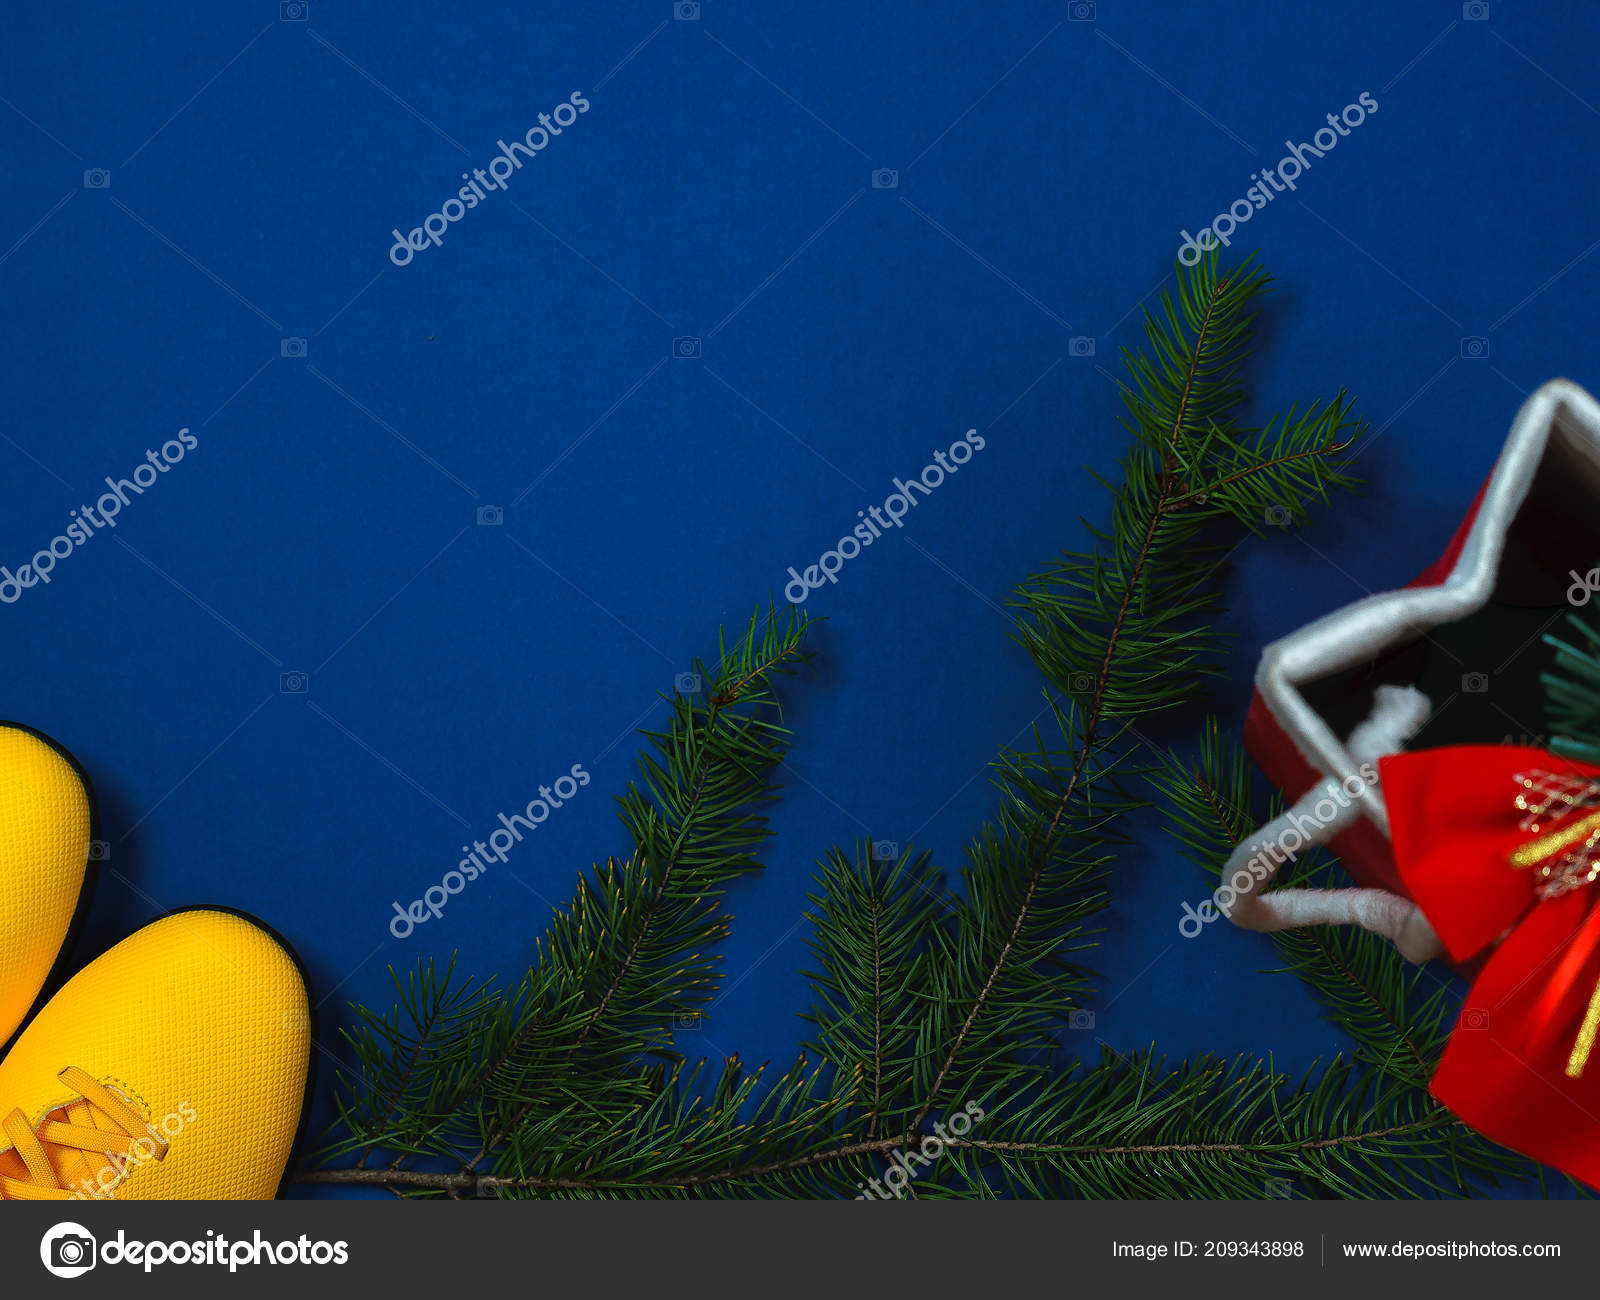 Christmas Sports Background.Sports Christmas Kit With Yellow Sneakers Branches Of